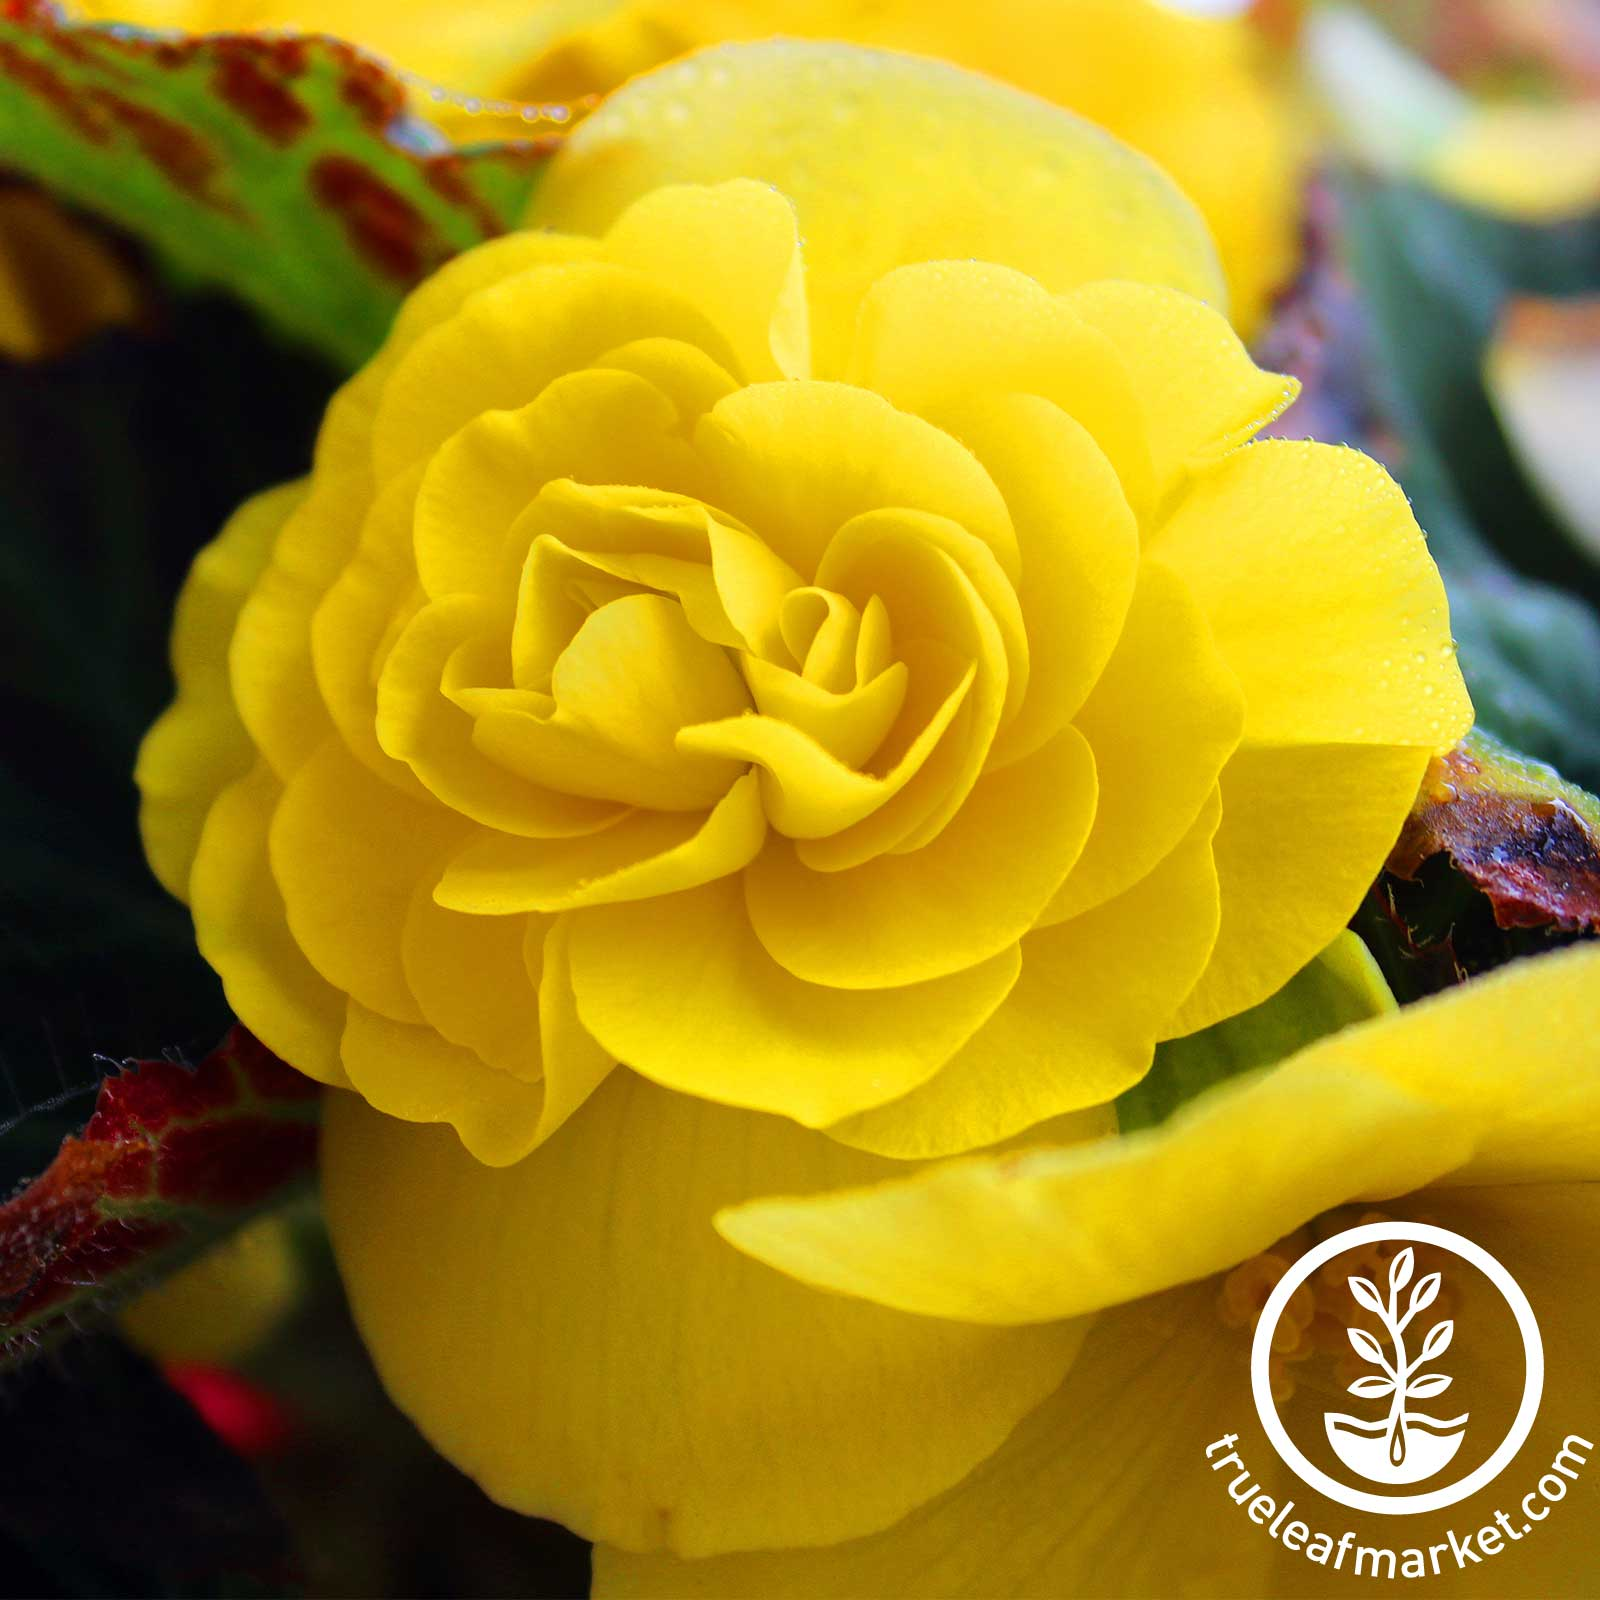 Begonia - Tuberous - Nonstop Series - Mocha Yellow (pelleted)